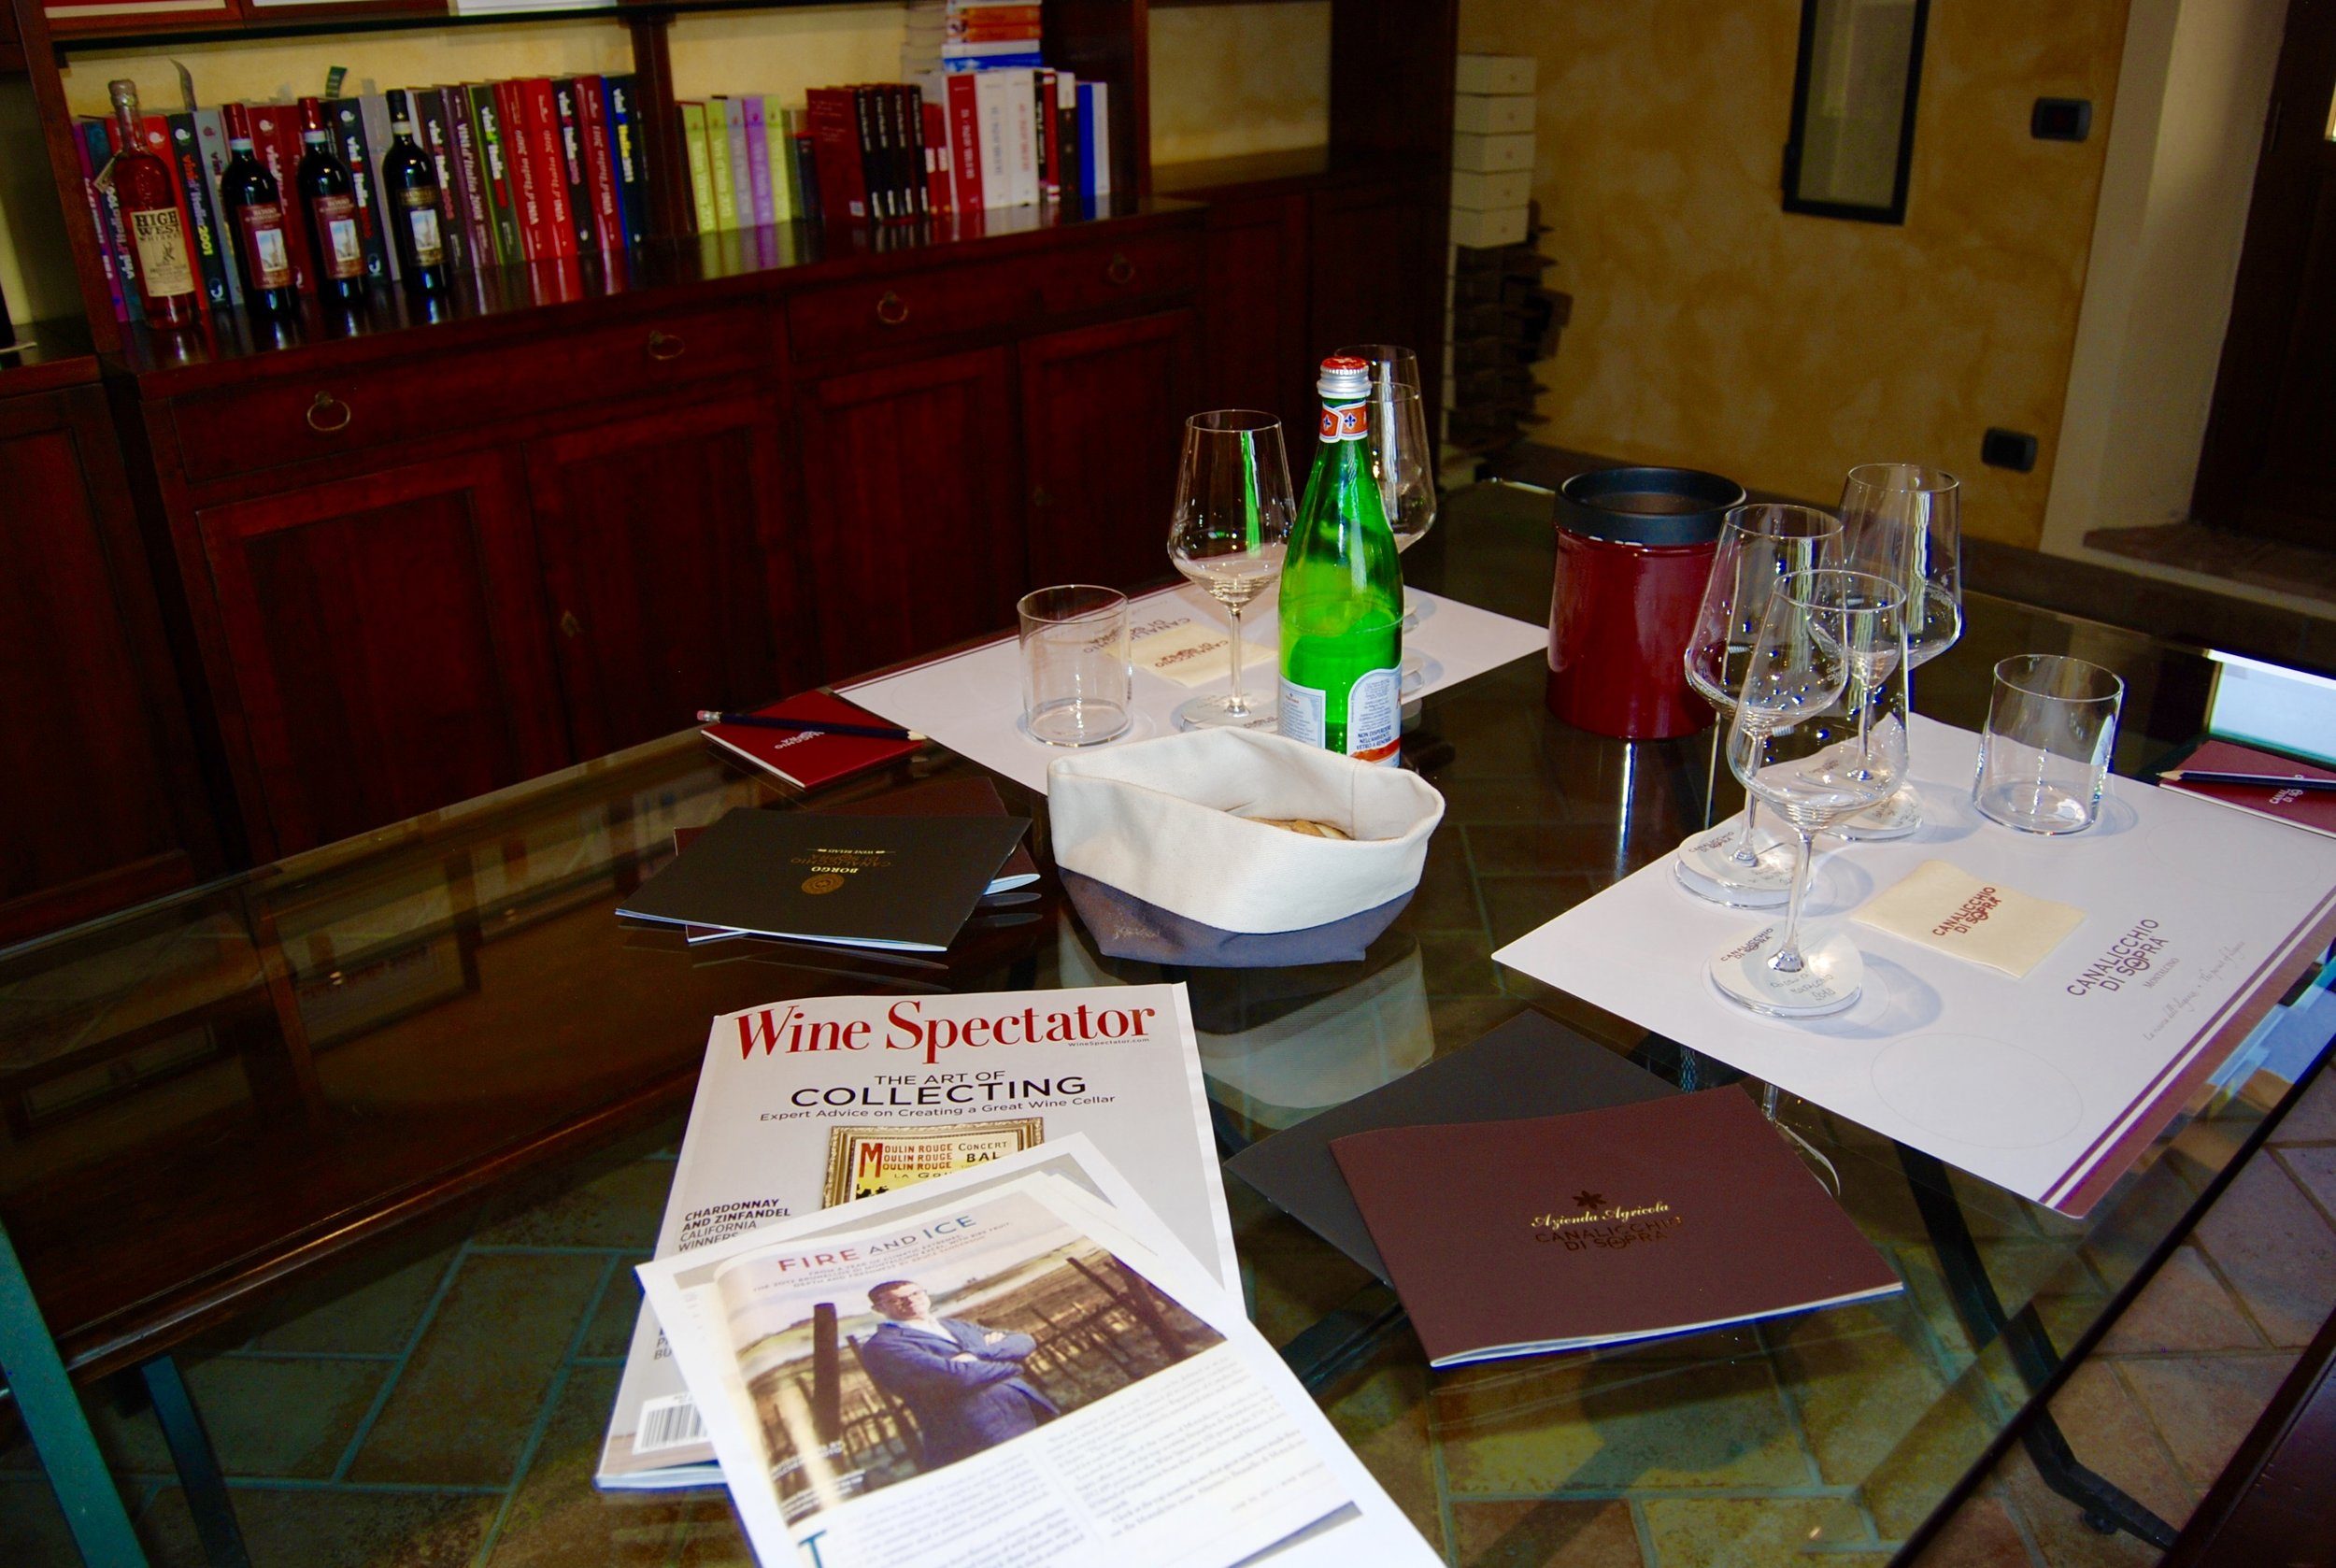 The tasting room at Canalicchio di Sopra, a winery with wines that score high and are featured in Wine Spectator.